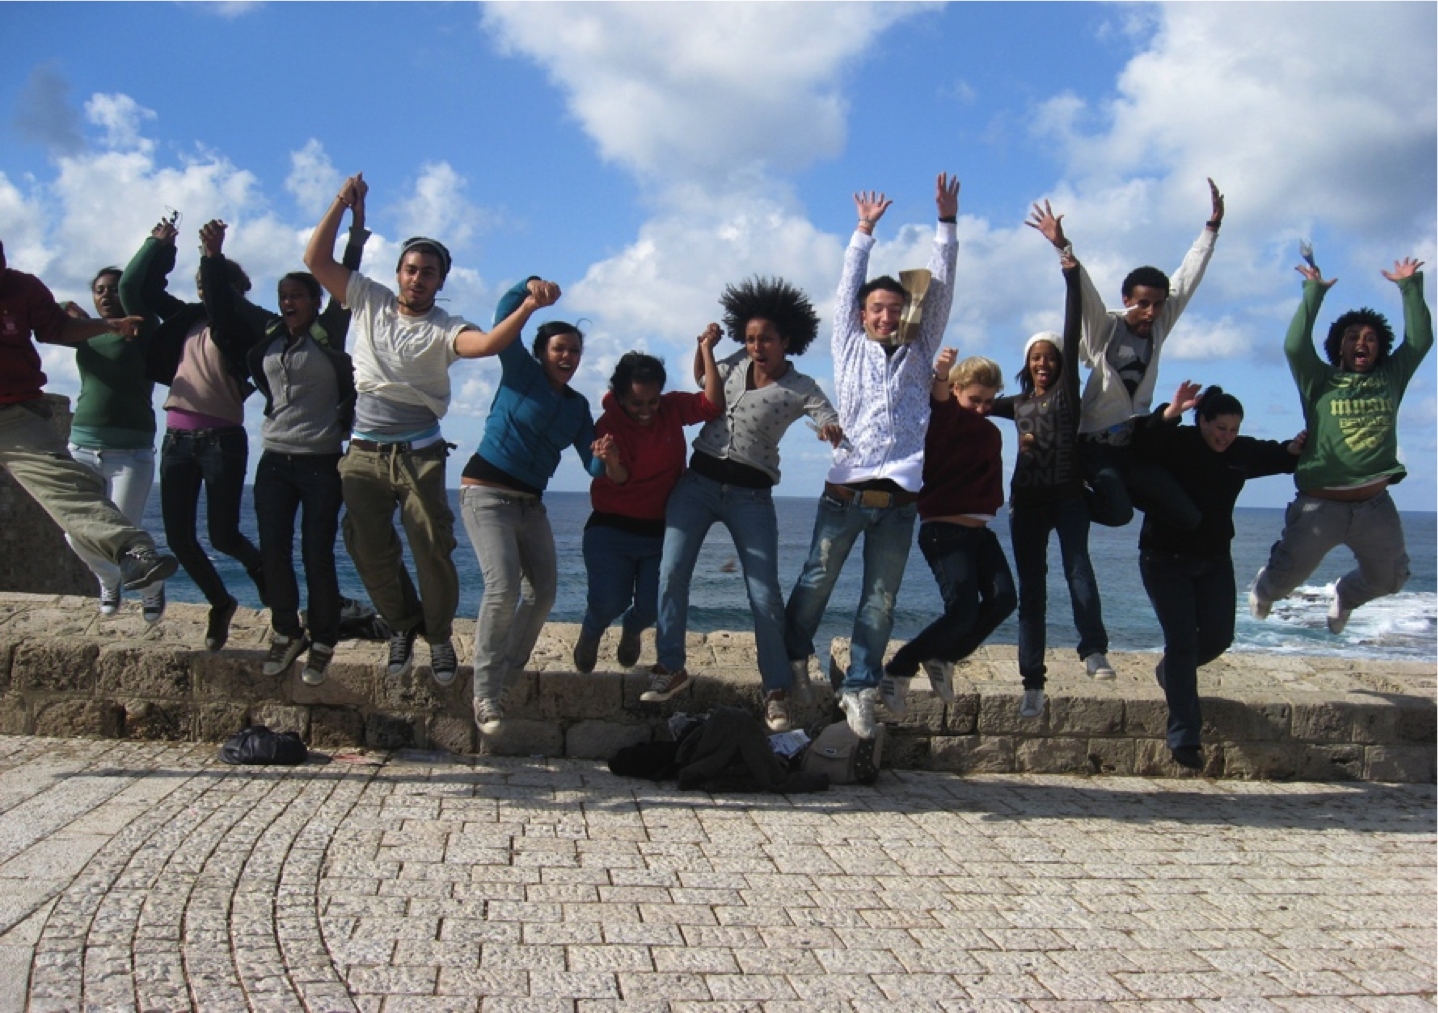 Gap Year Program - Kibbutz Program Center: Gap Year Programs  1